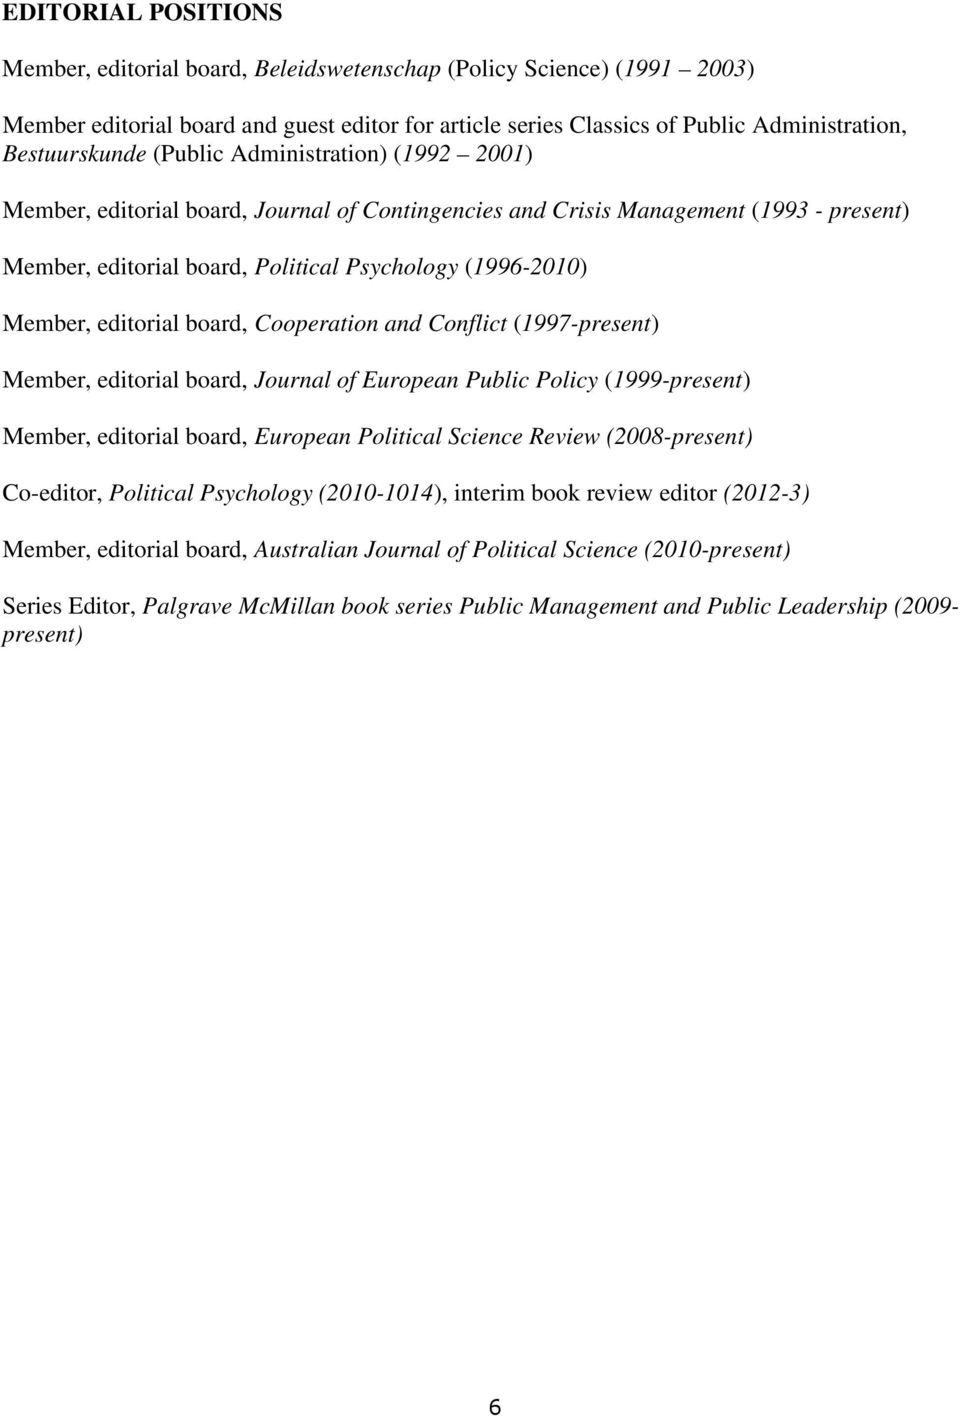 editorial board, Cooperation and Conflict (1997-present) Member, editorial board, Journal of European Public Policy (1999-present) Member, editorial board, European Political Science Review